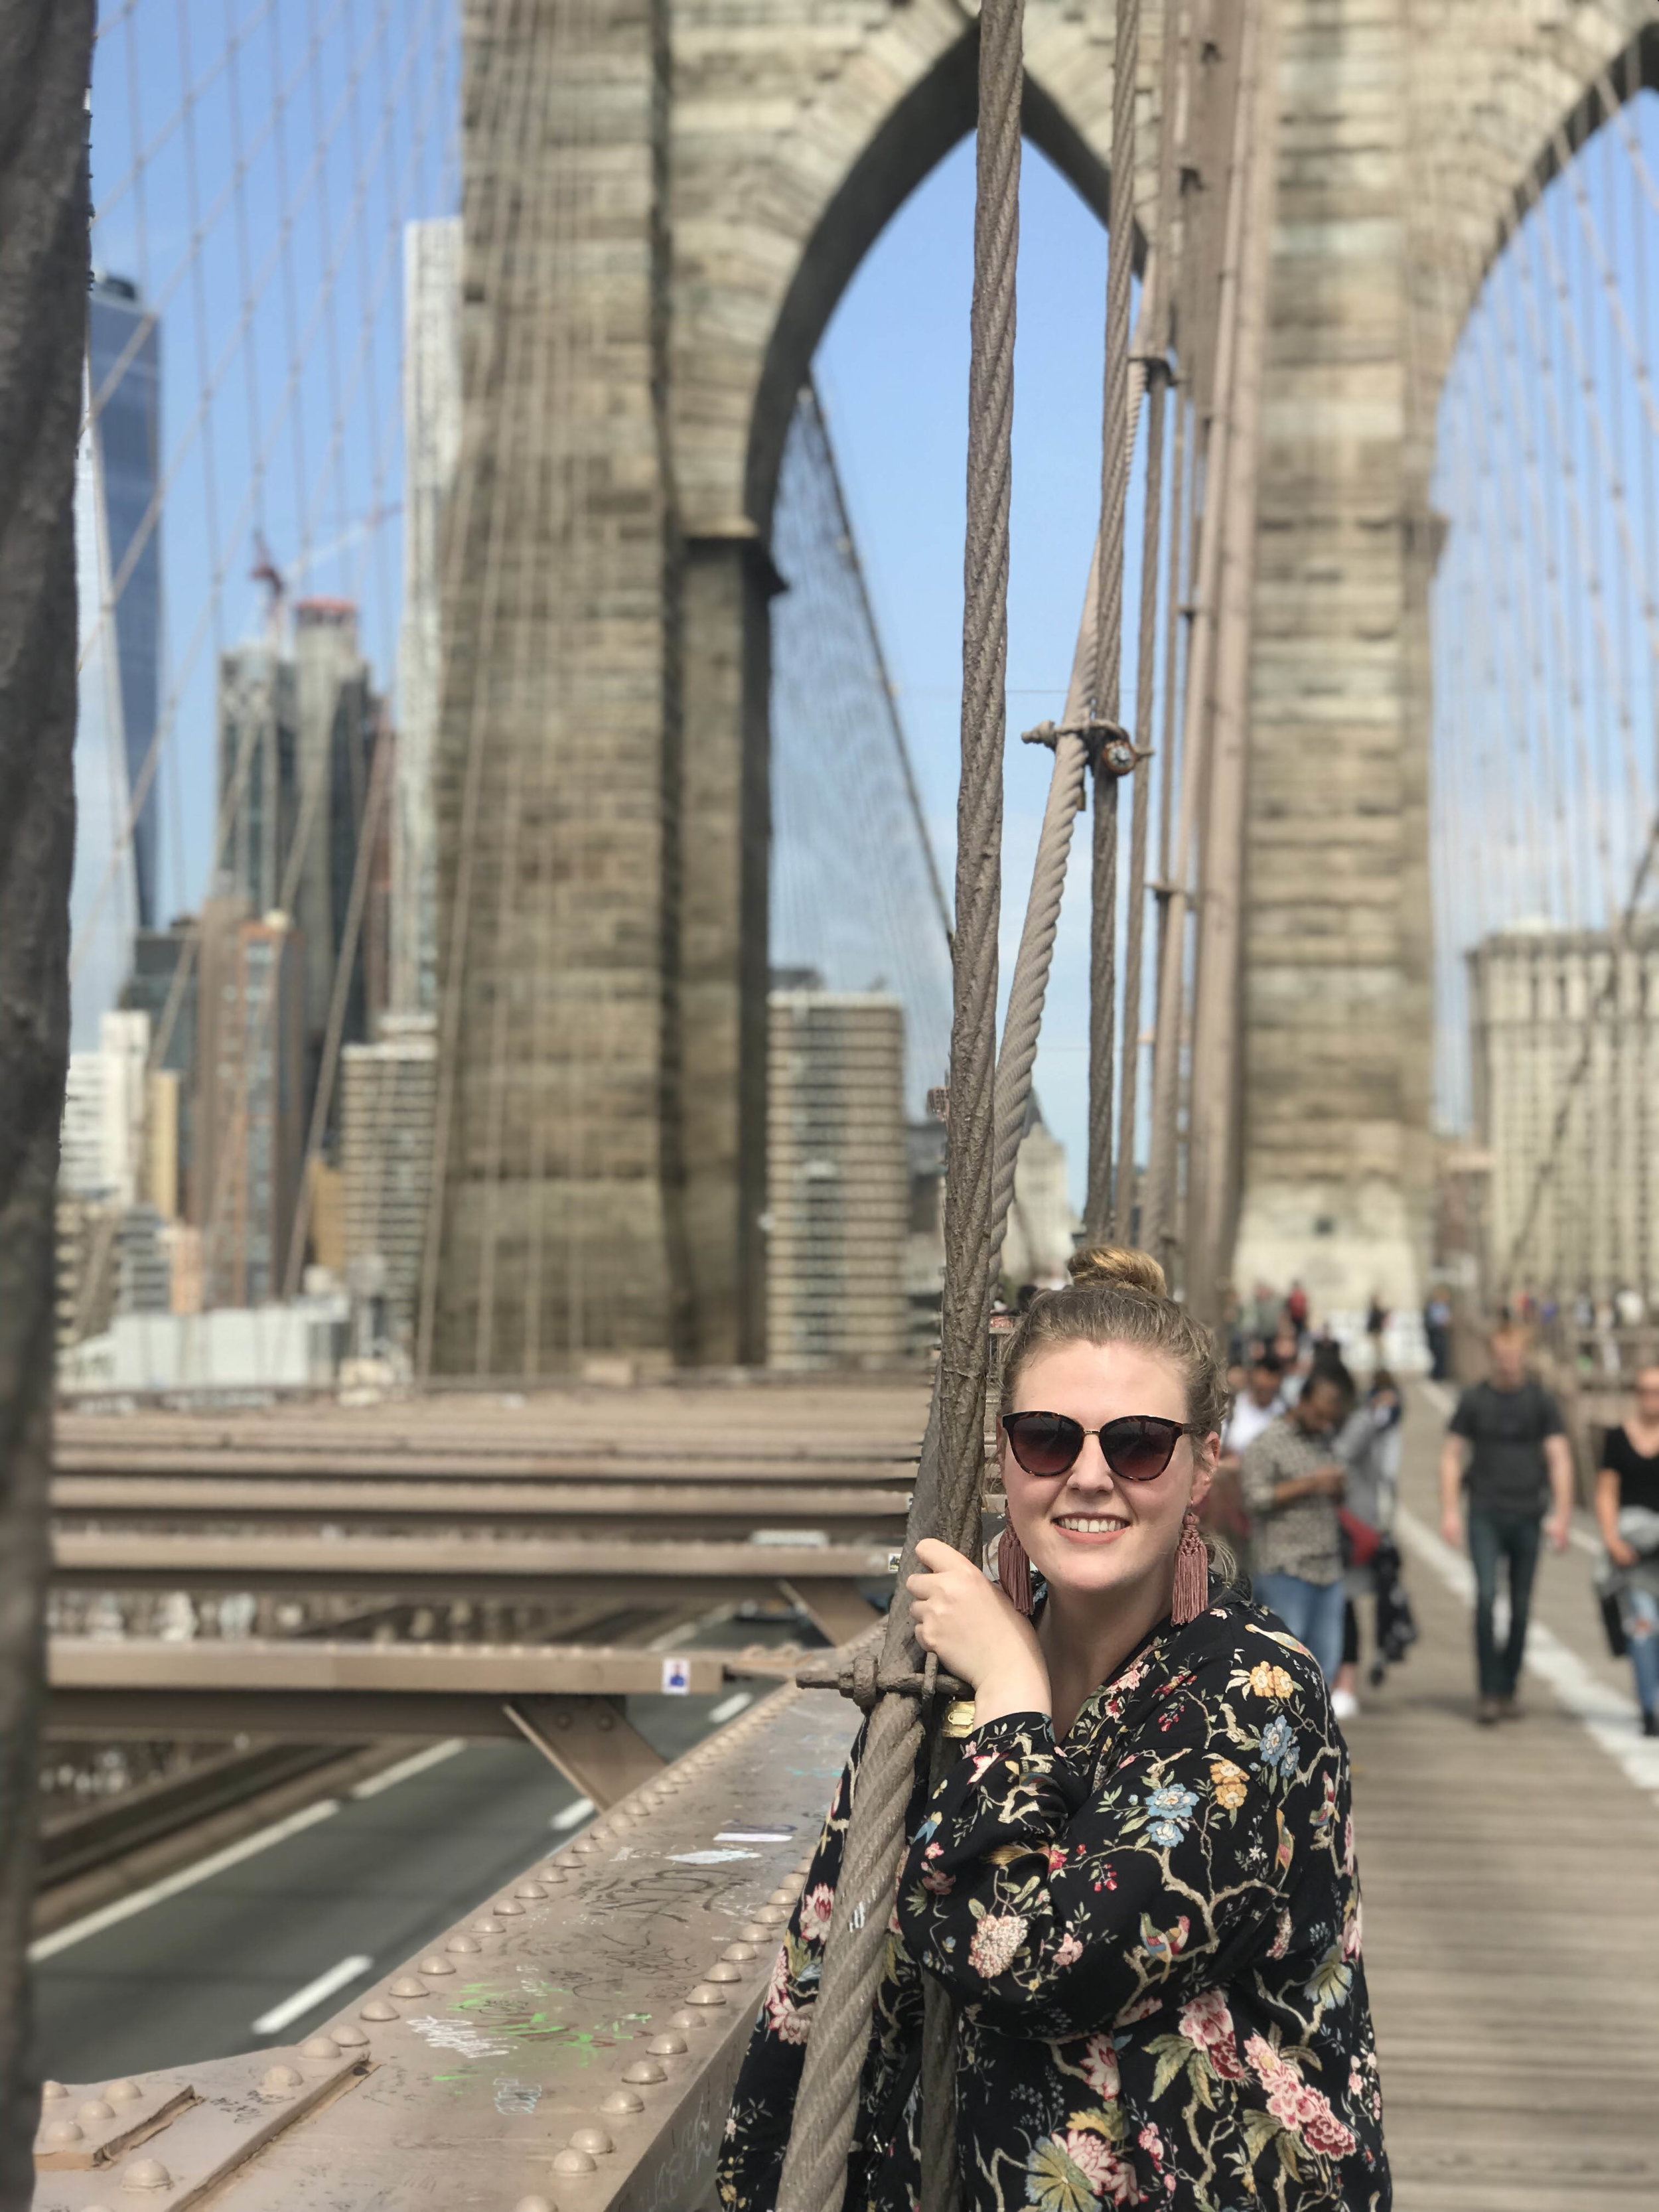 This past spring, Greer enjoyed sightseeing on the Brooklyn Bridge.